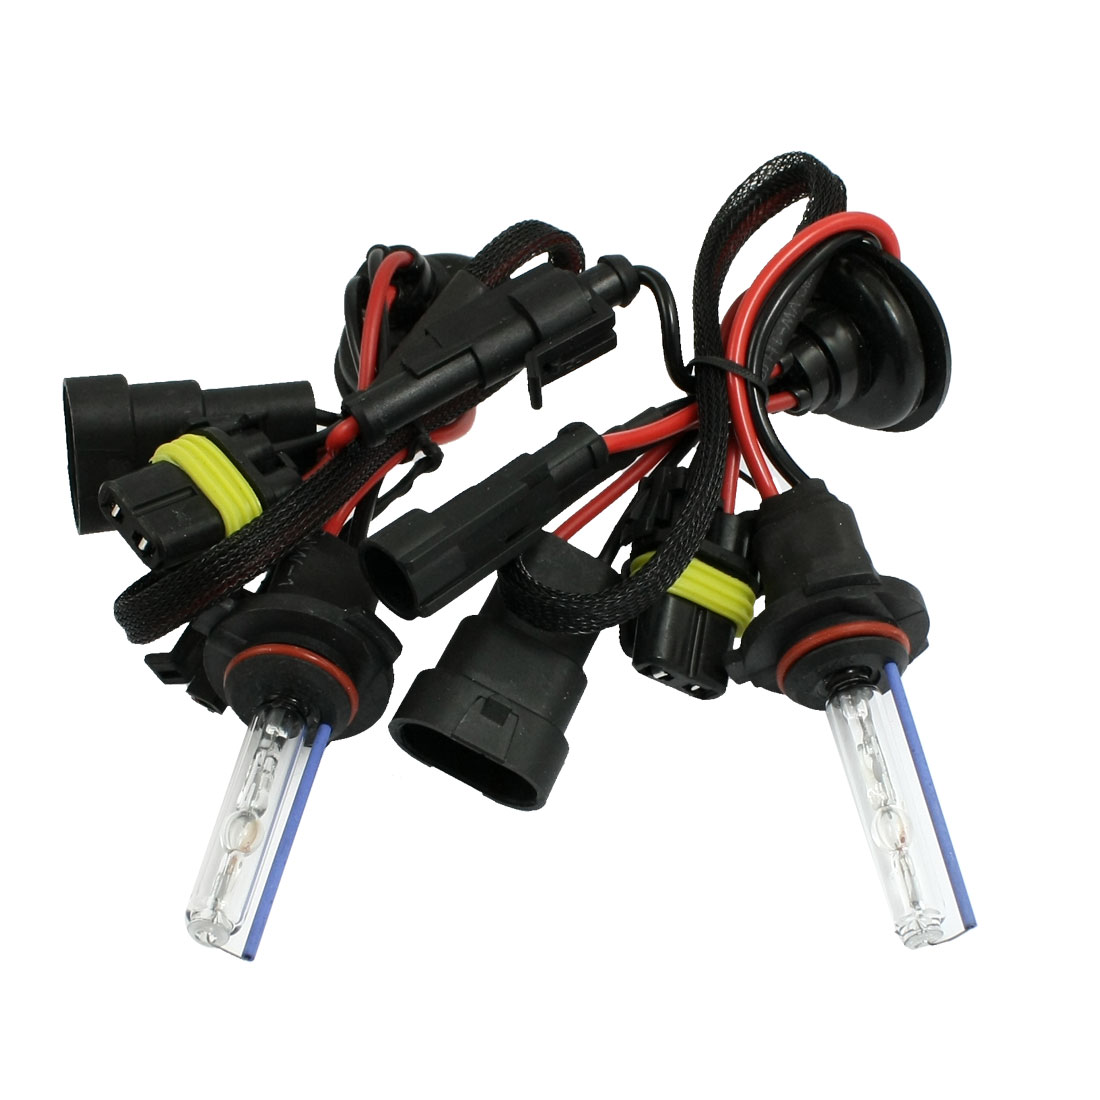 2 Pcs DC 12V 8000K 9005 Car HID Xenon Bulb Light Headlight Lamp